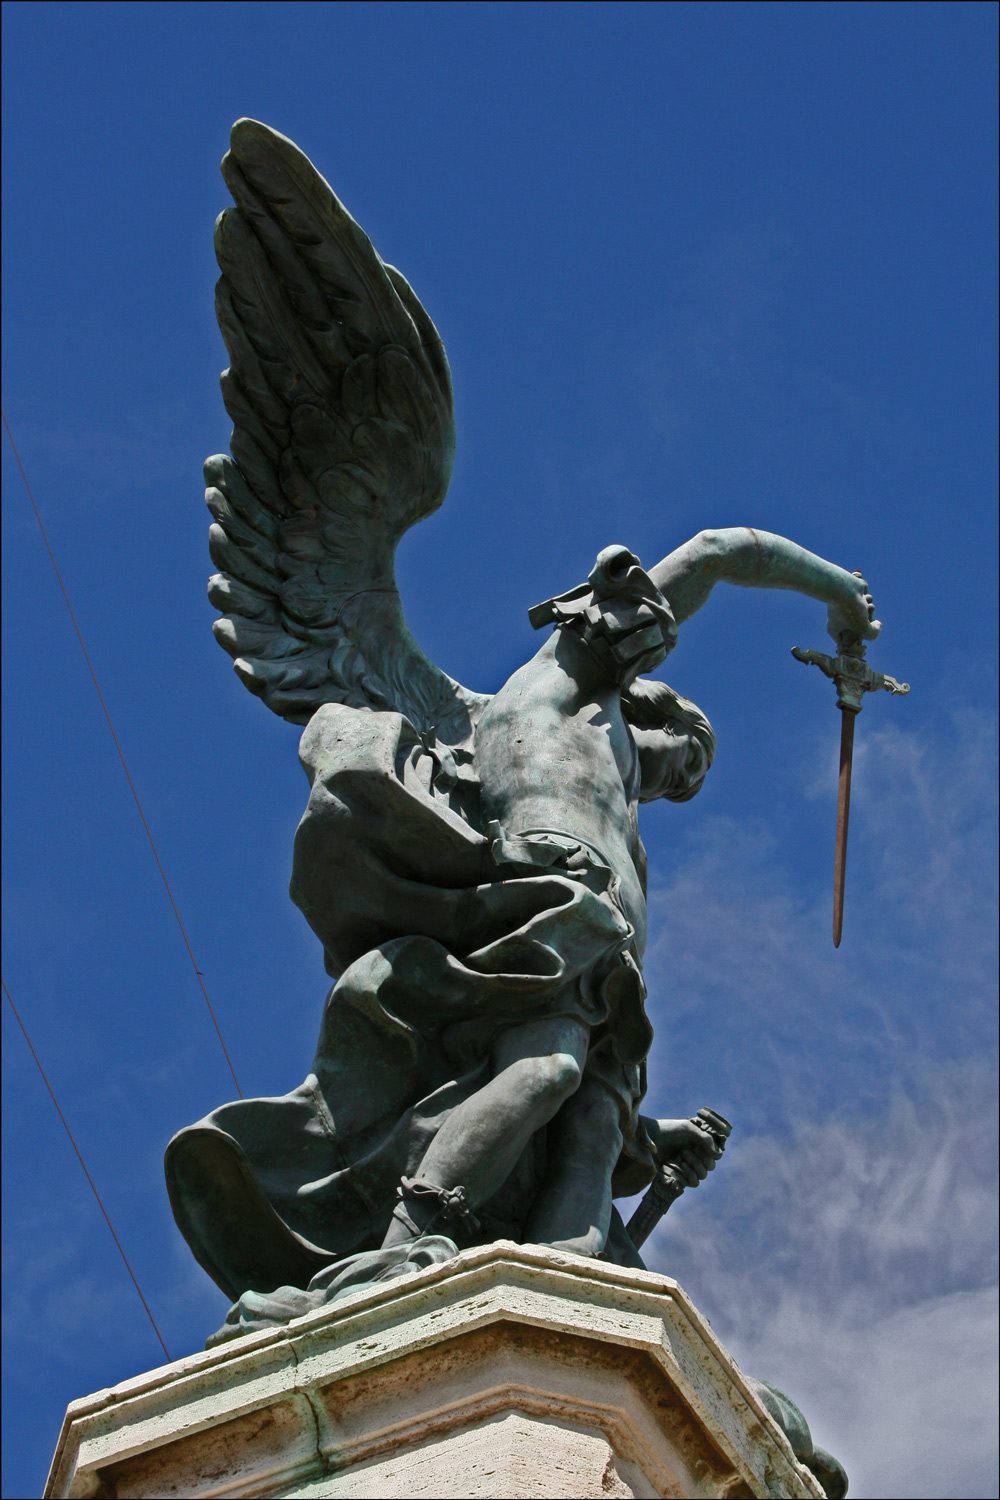 The Archangel Michael by Pieter Van Verschaffelt